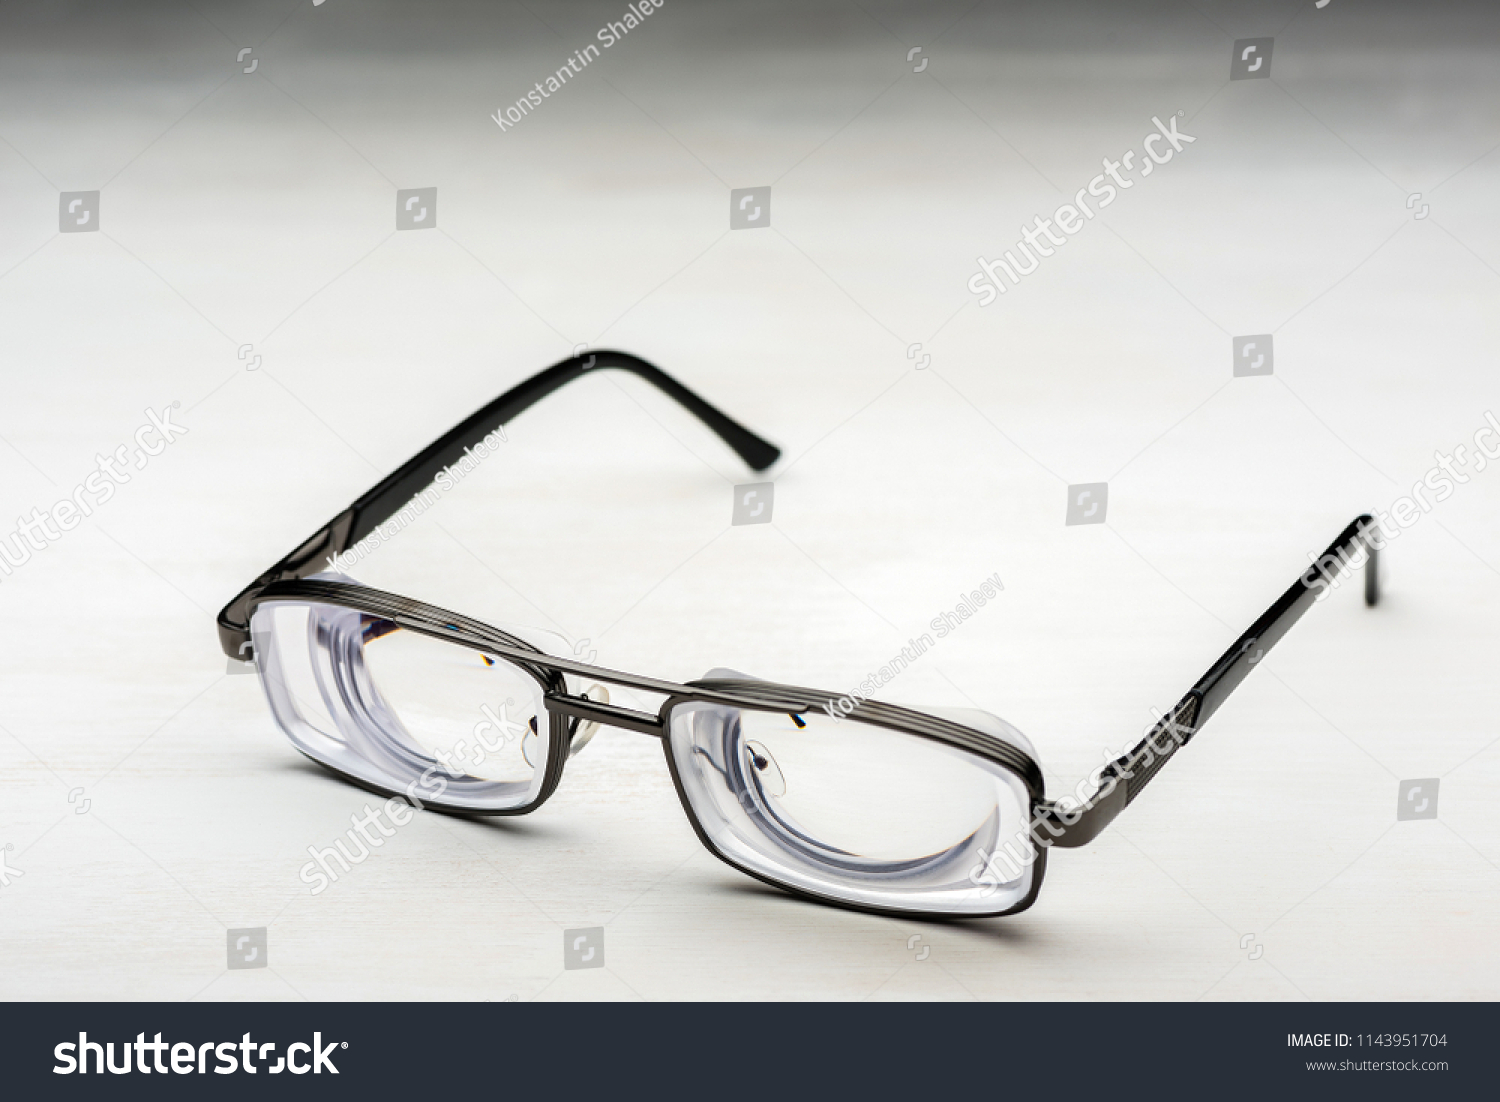 528537fa5a Very strong glasses with thick lenticular lenses in metal frame for high  myopia and poor eyesight